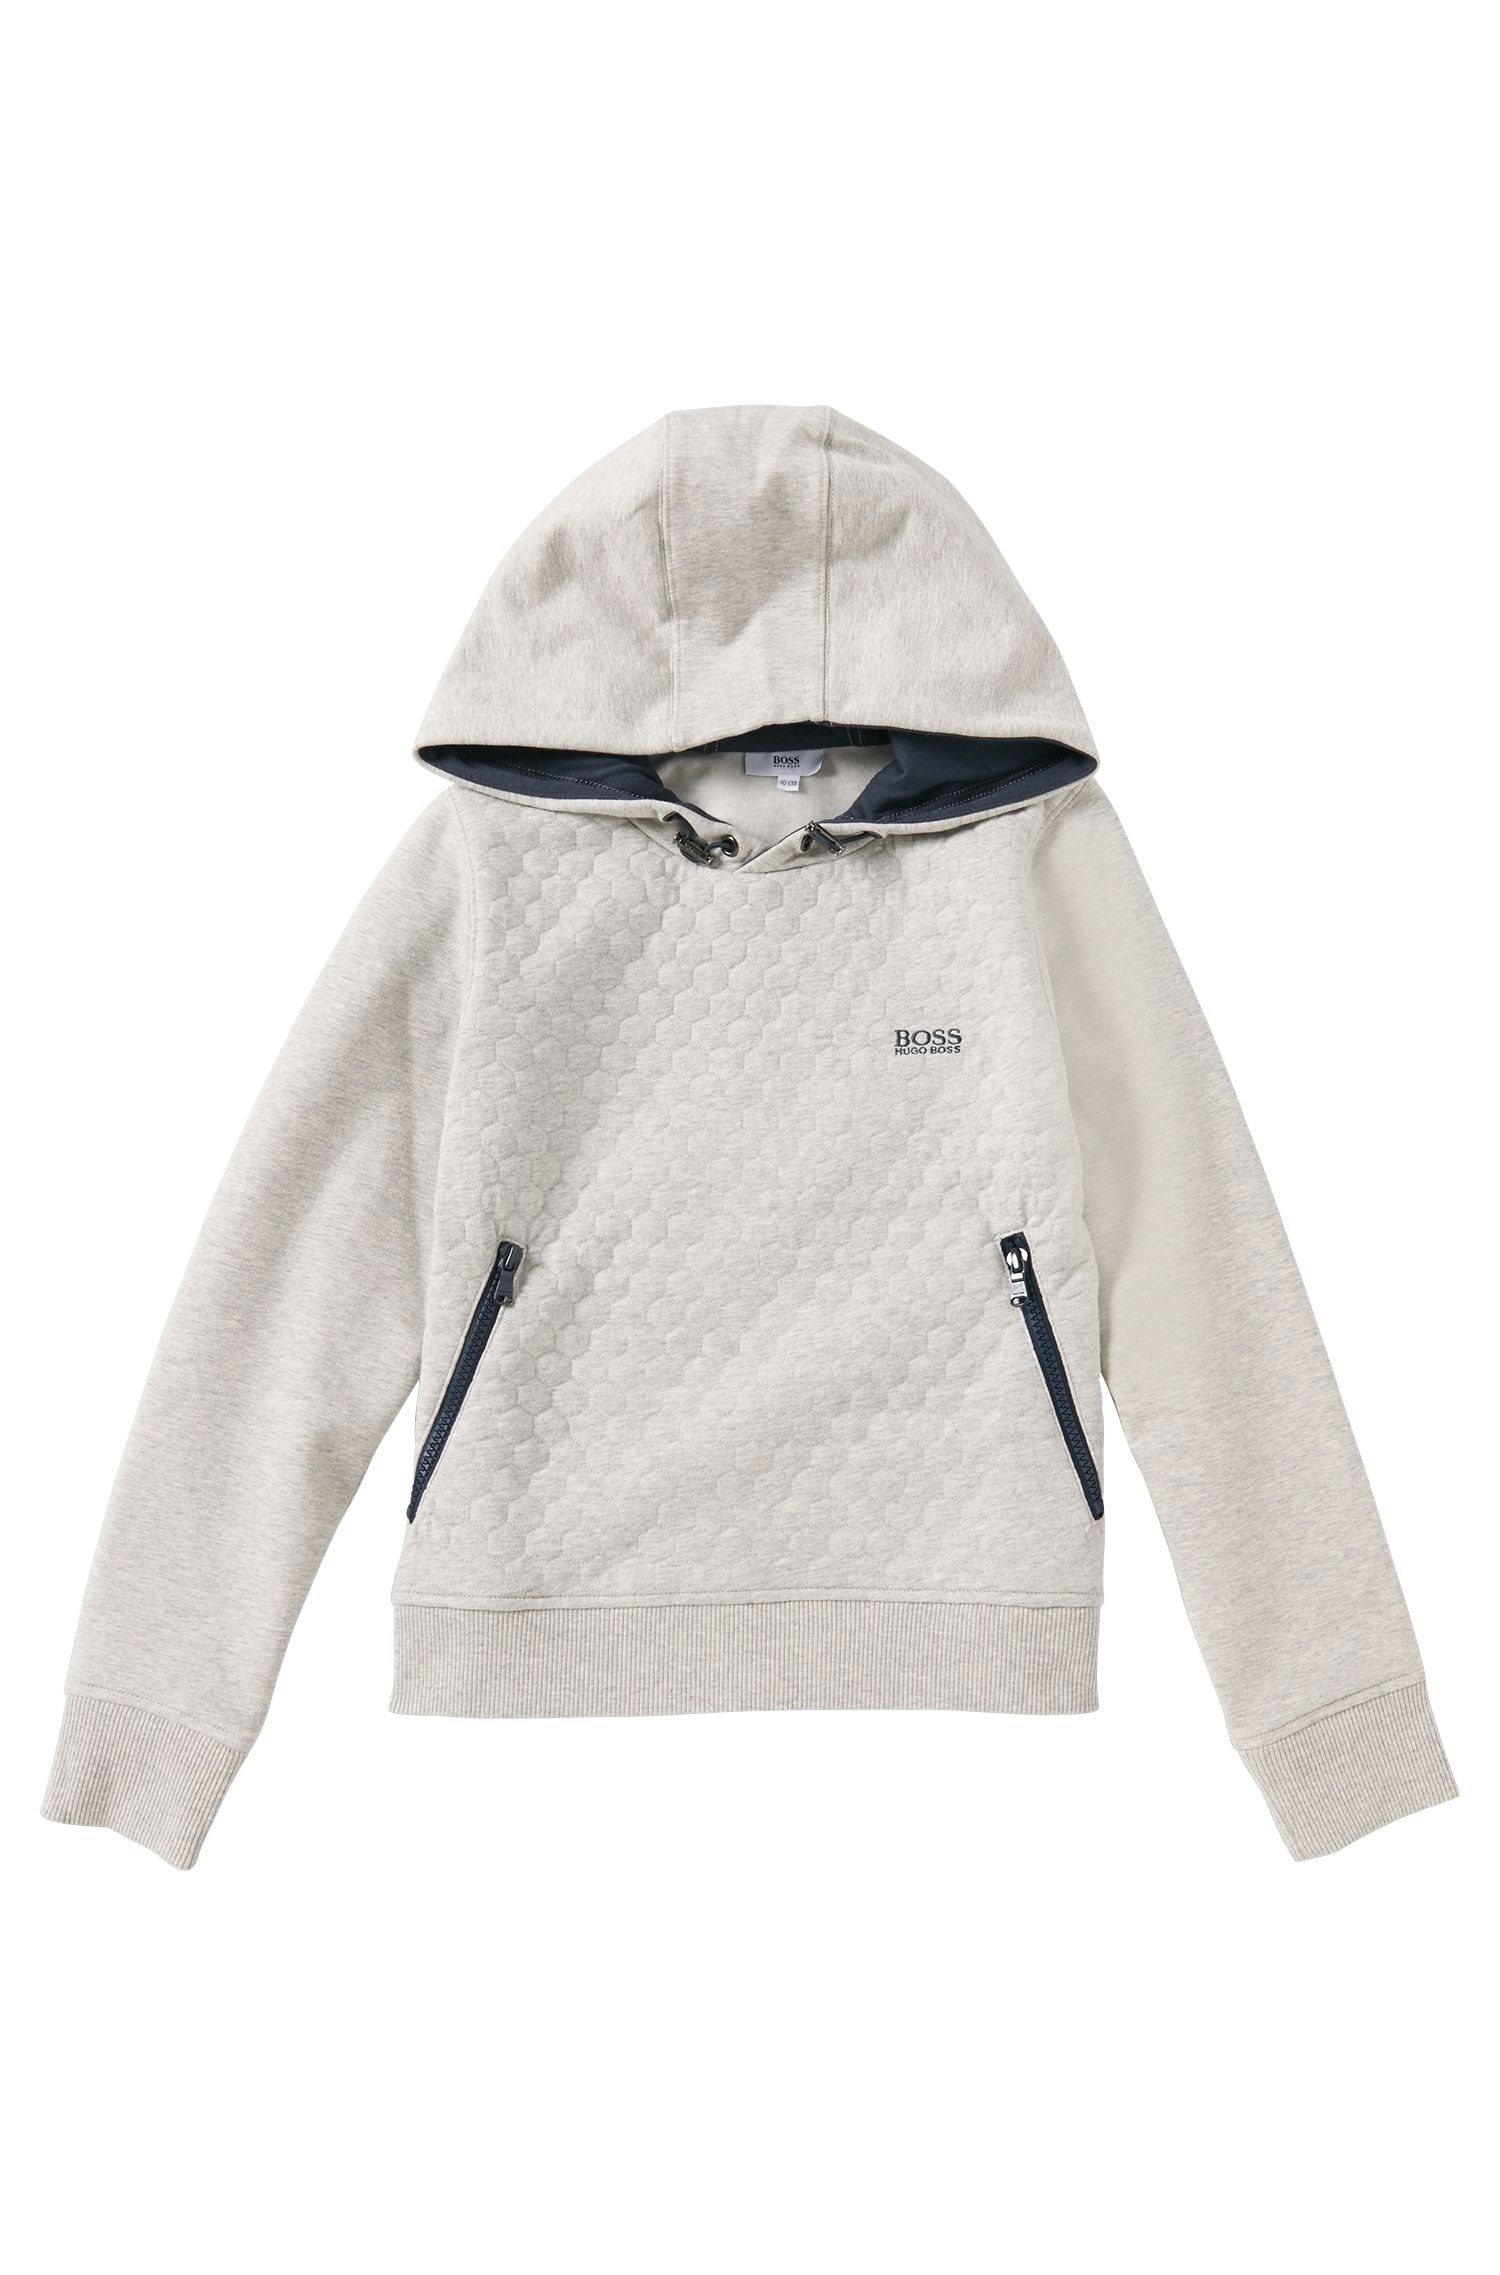 Kids Sweatshirt aus Baumwoll-Mix: 'J25889'